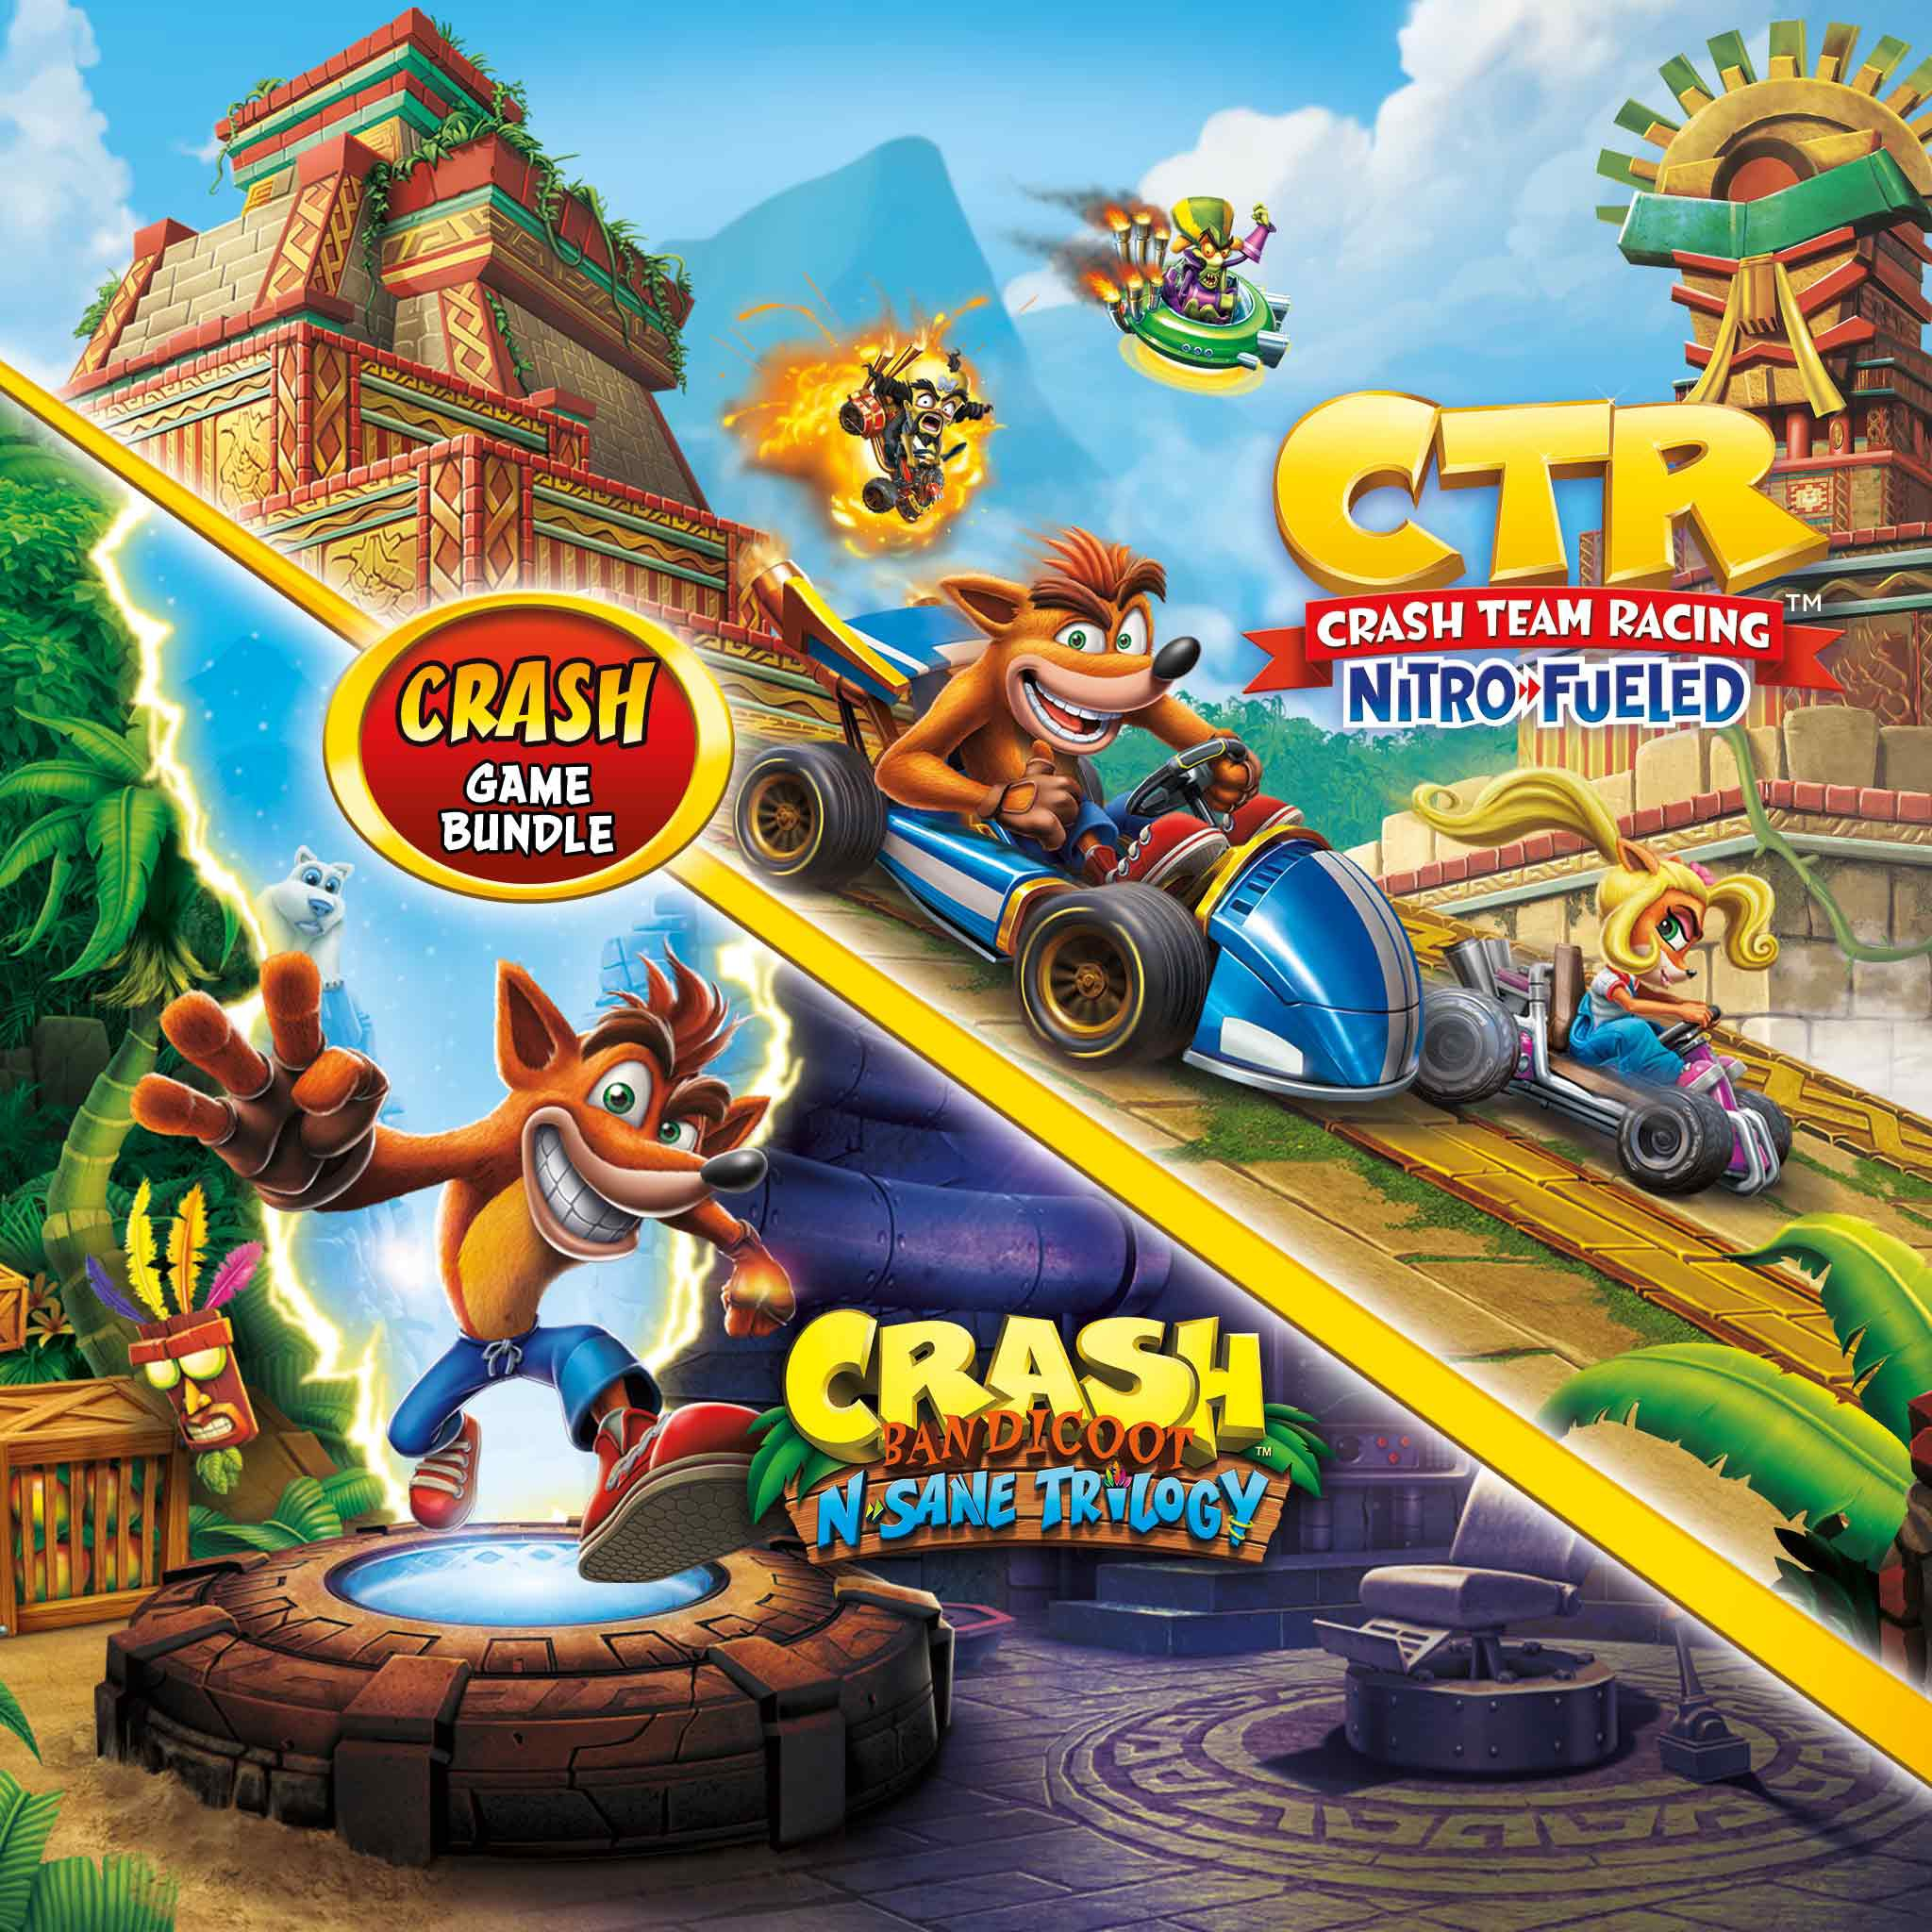 Набор Crash Bandicoot™ - N. Sane Trilogy + CTR Nitro-Fueled